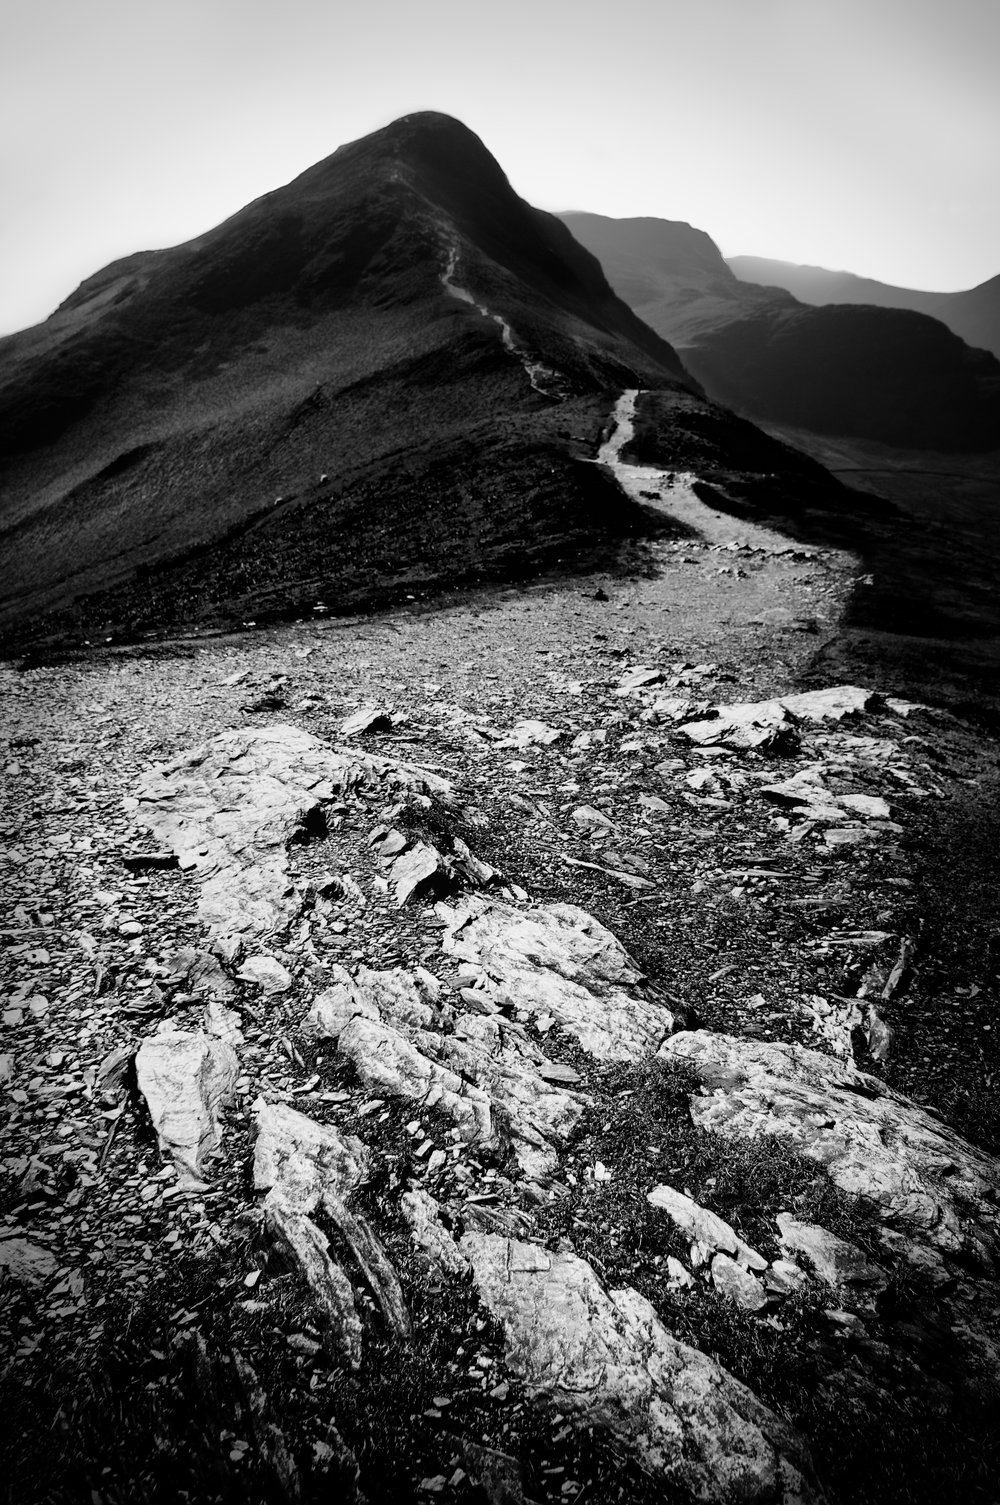 Cat Bells - a favourite location brought to life with black and white on this image.